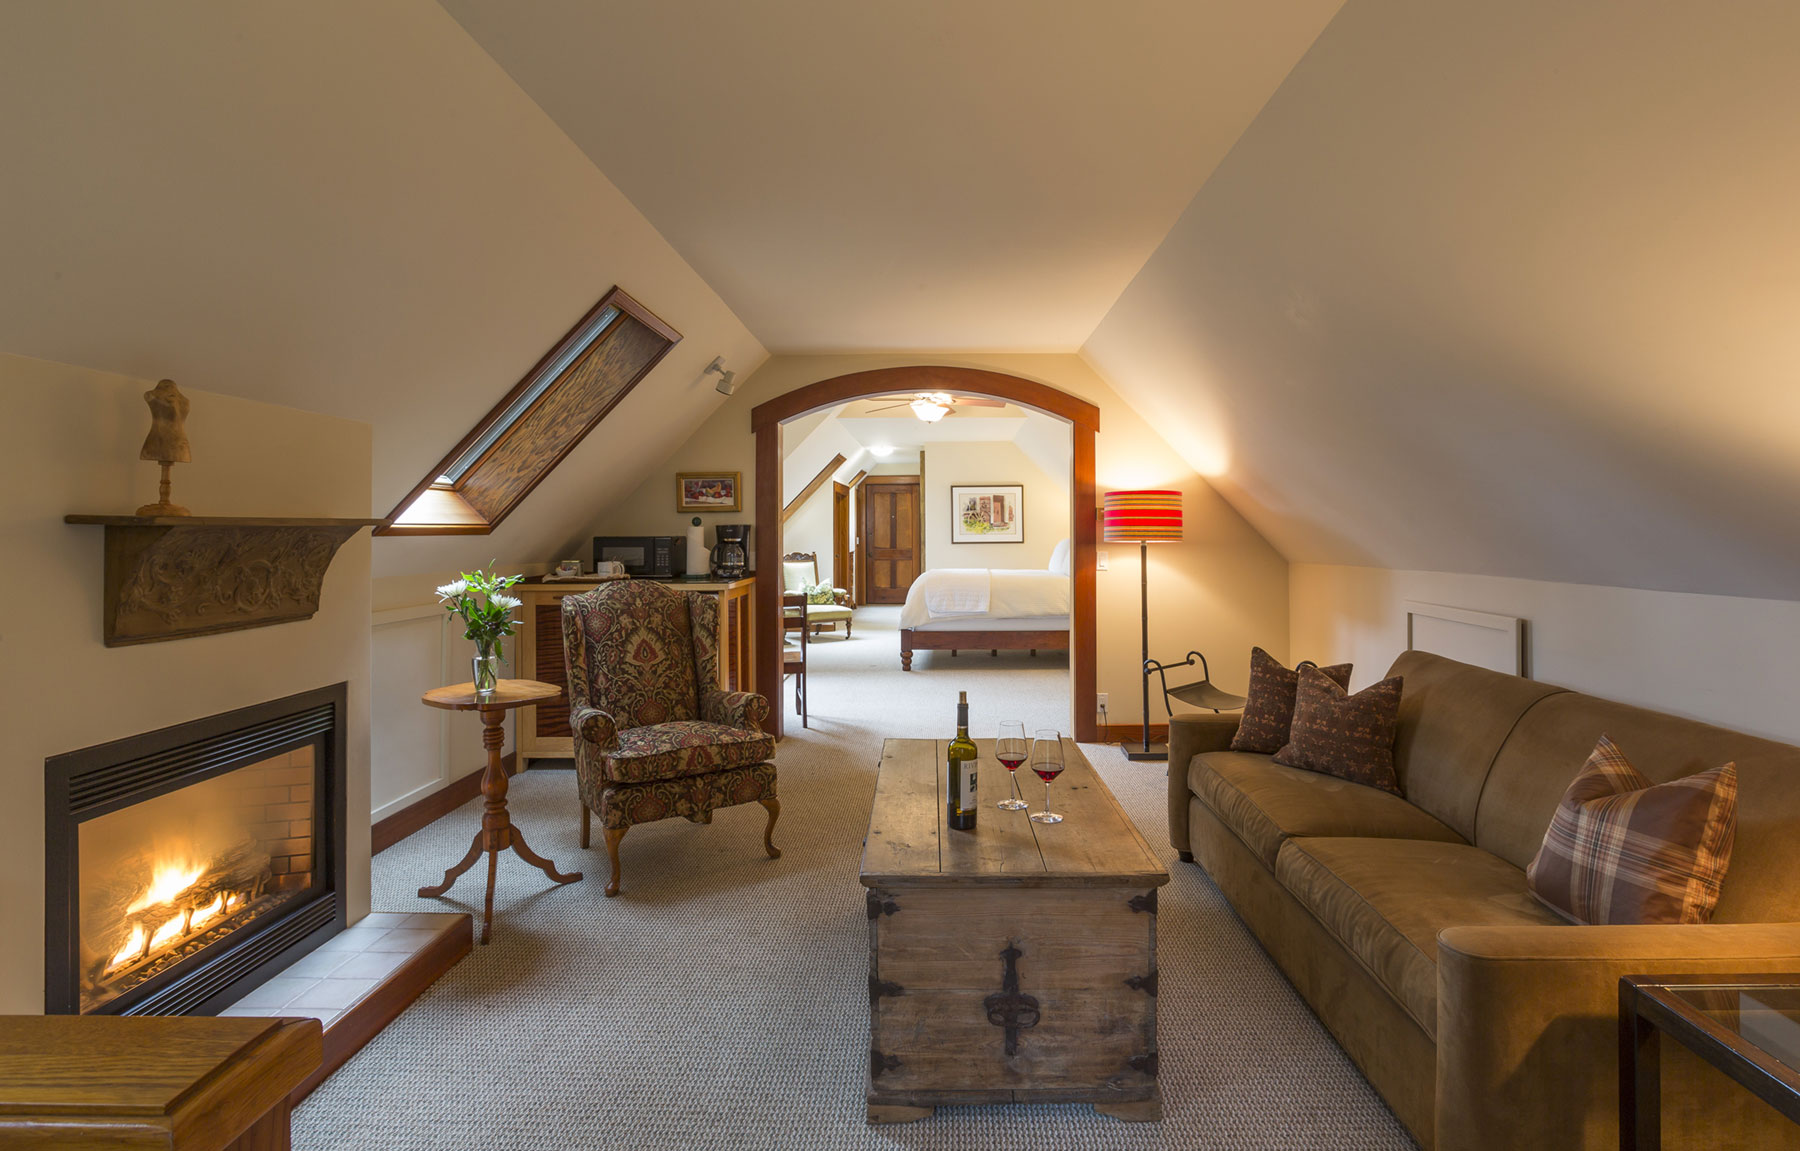 The Carriage House Grand Suite sitting room with eclectic furnishings and cozy fireplace